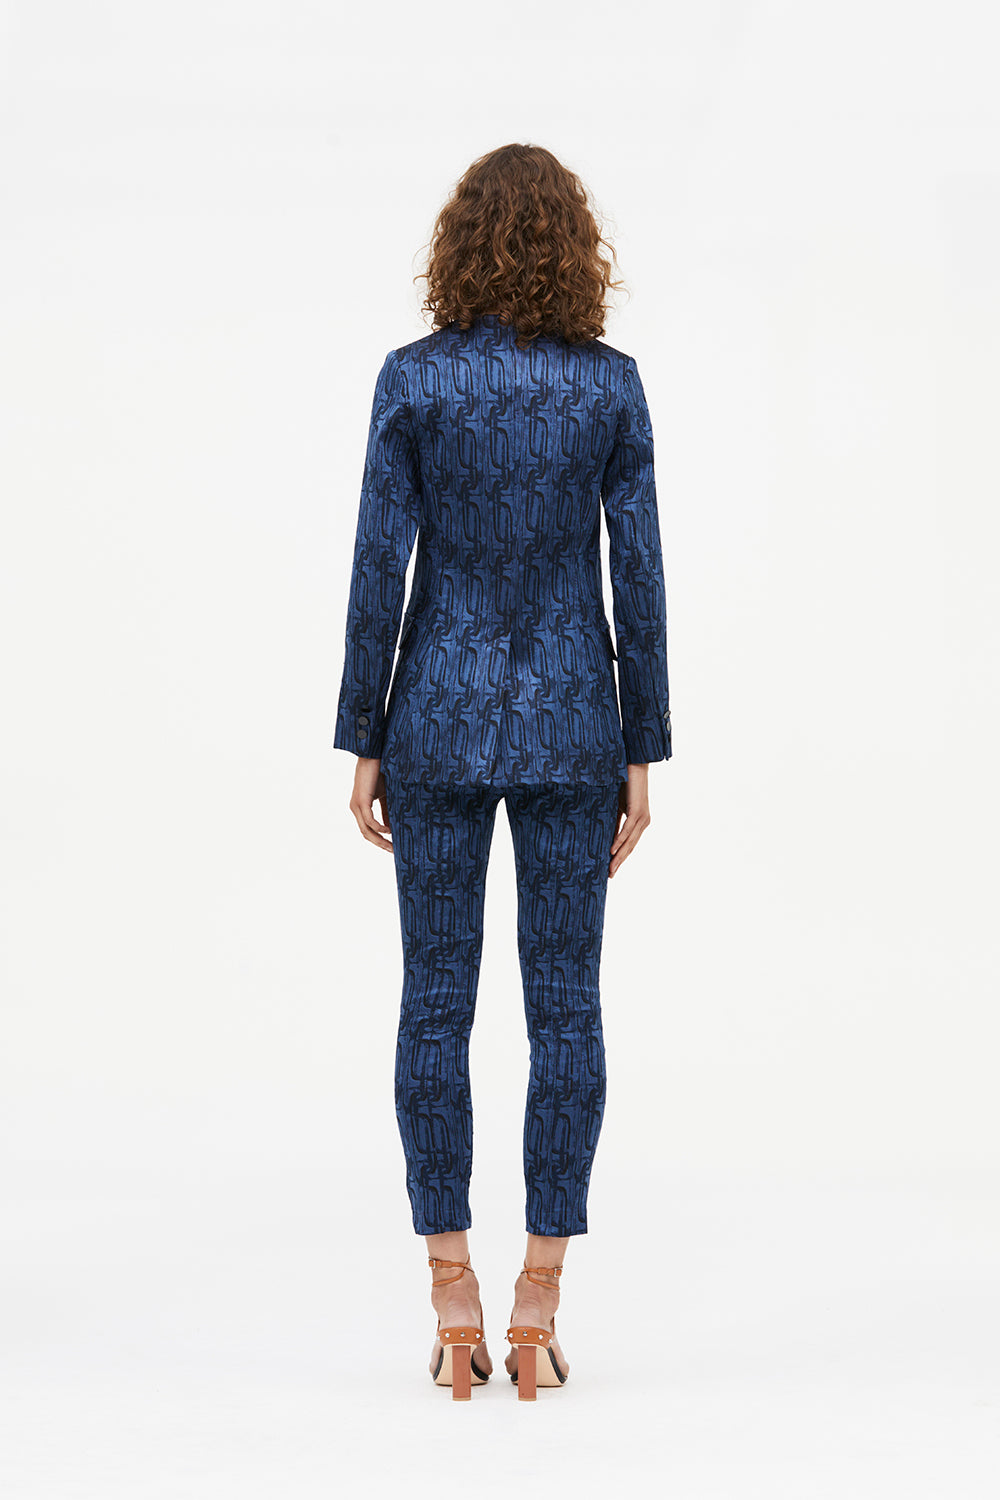 3b8c2c839840c Double Exposure Blazer in Ink   Ethical Designer Jackets by Manning ...